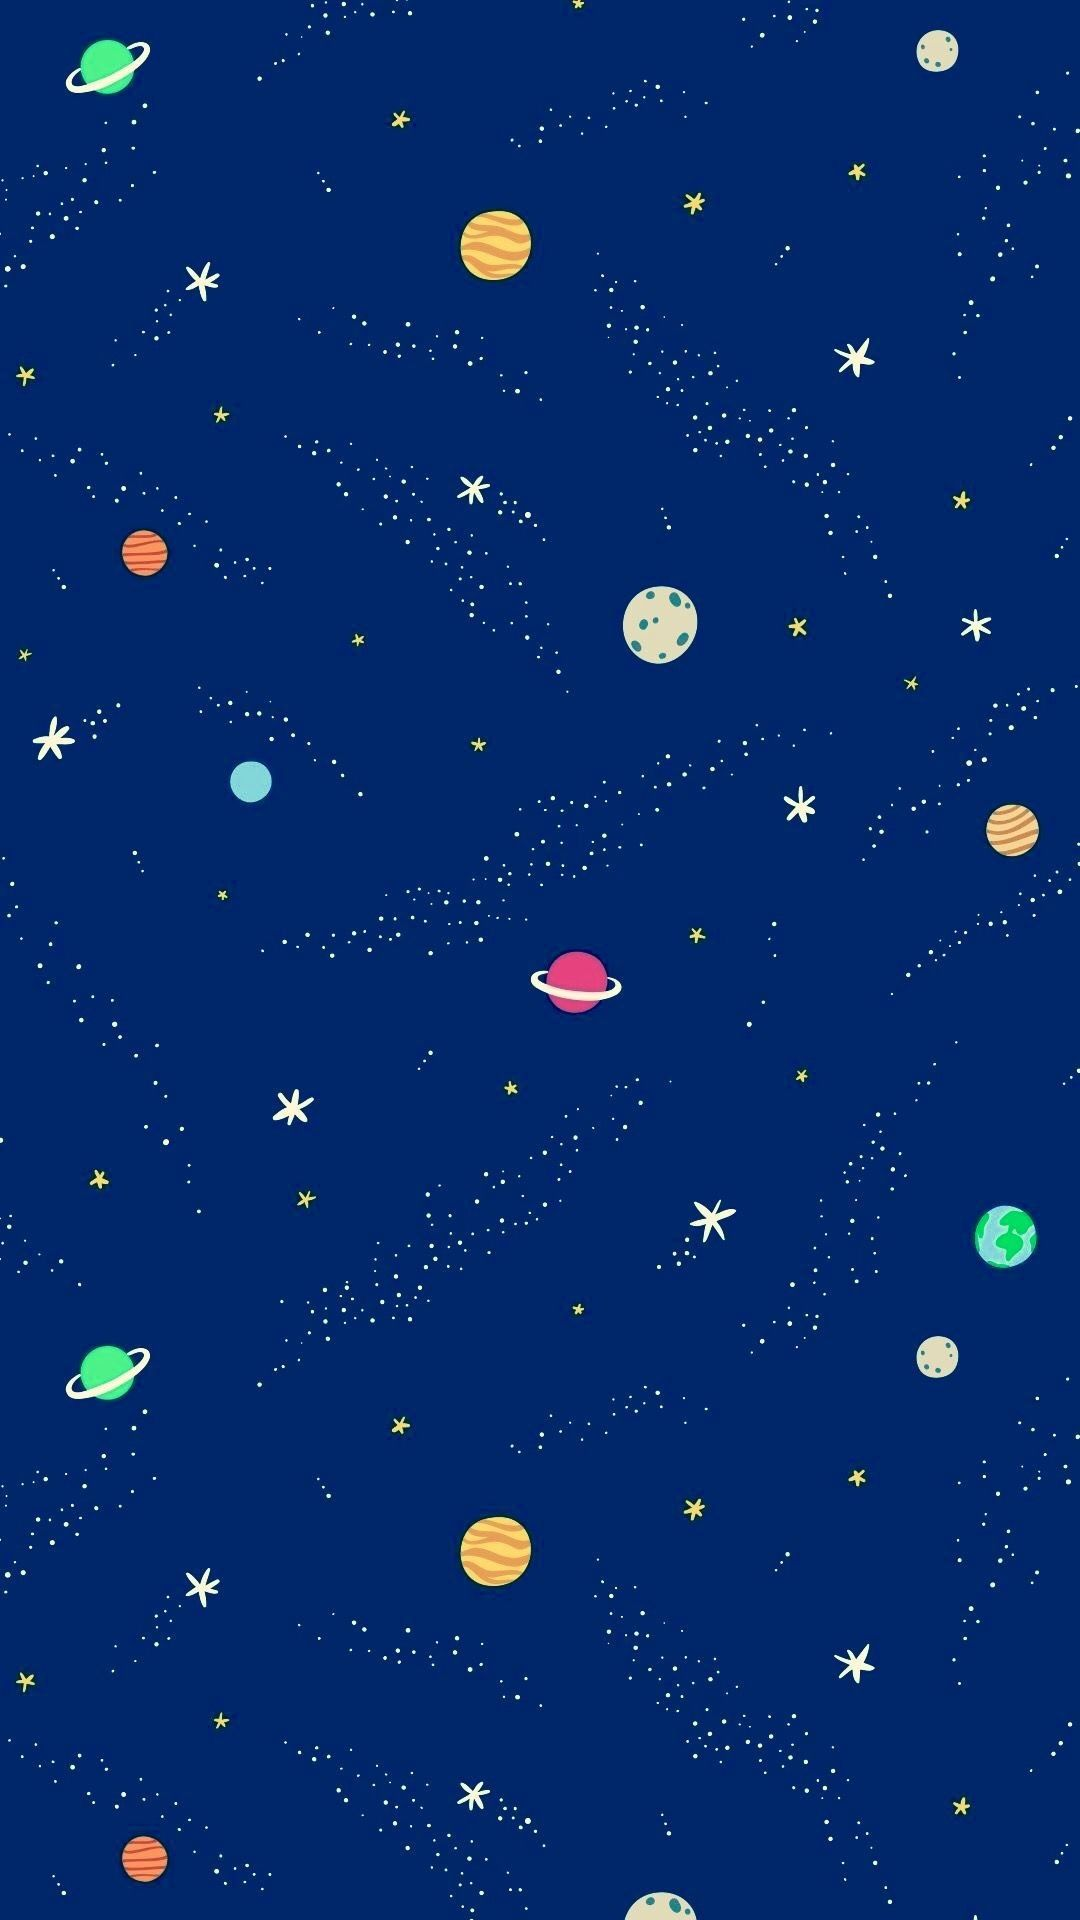 Aesthetic Star Wallpapers - Top Free ...